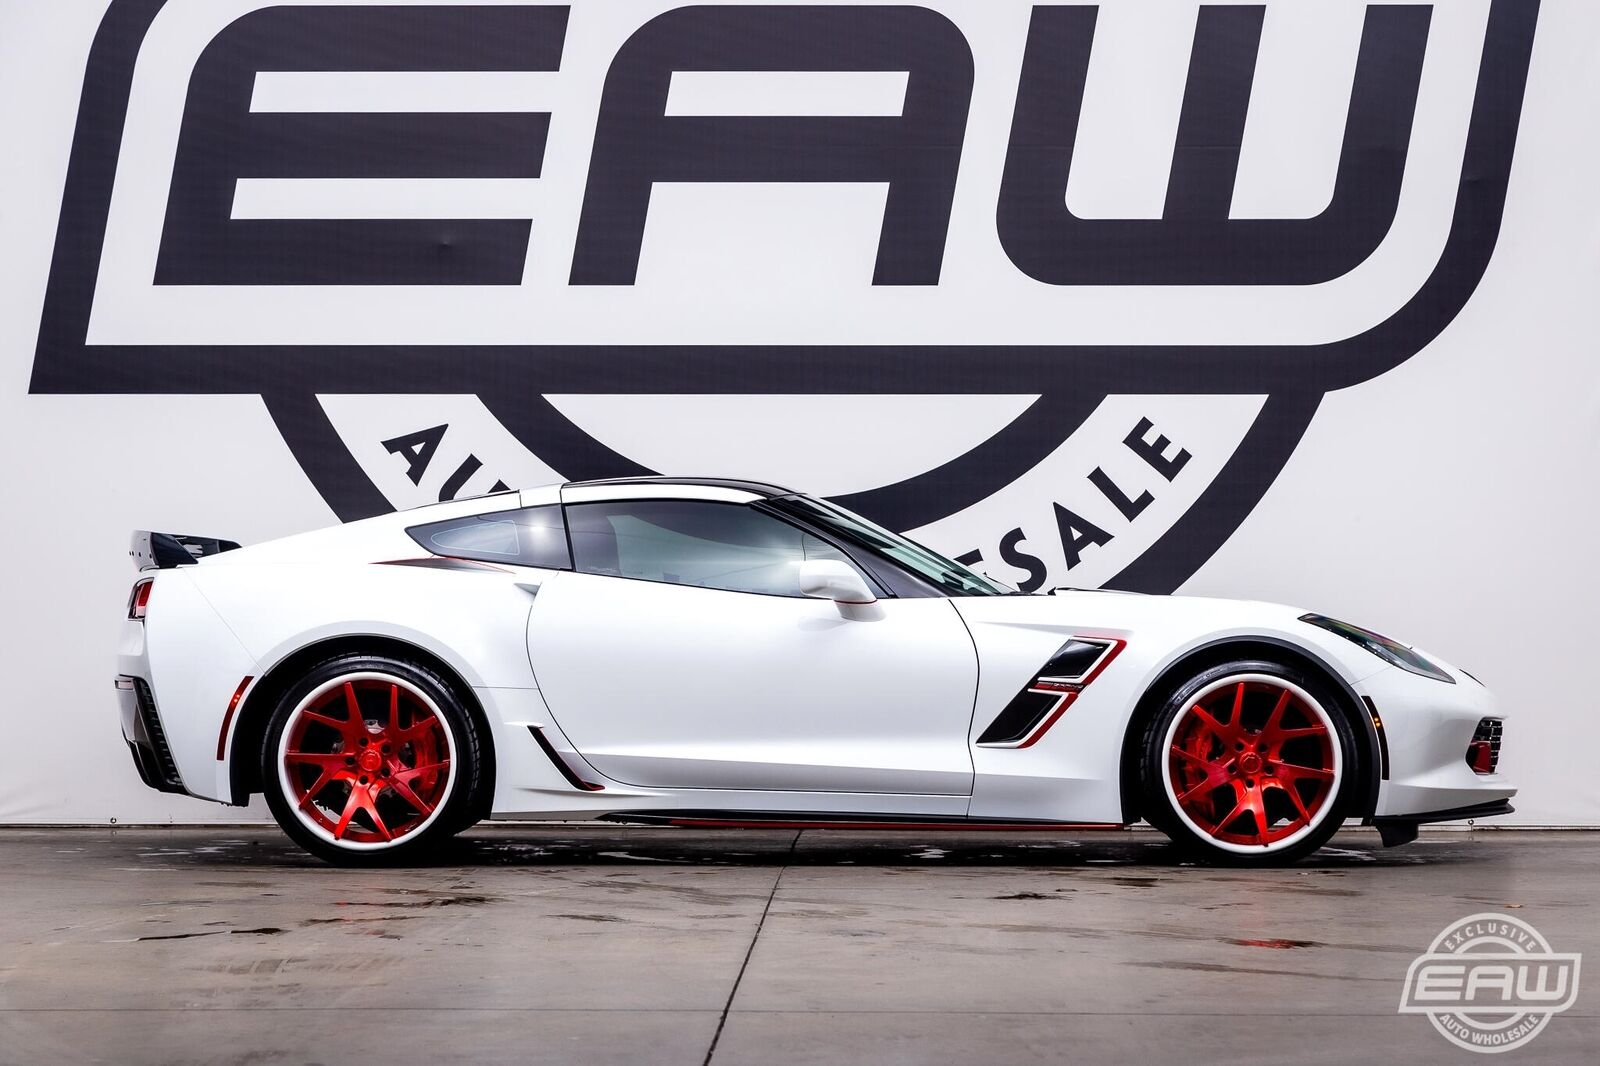 2017 White Chevrolet Corvette Grand Sport 3LT | C7 Corvette Photo 8